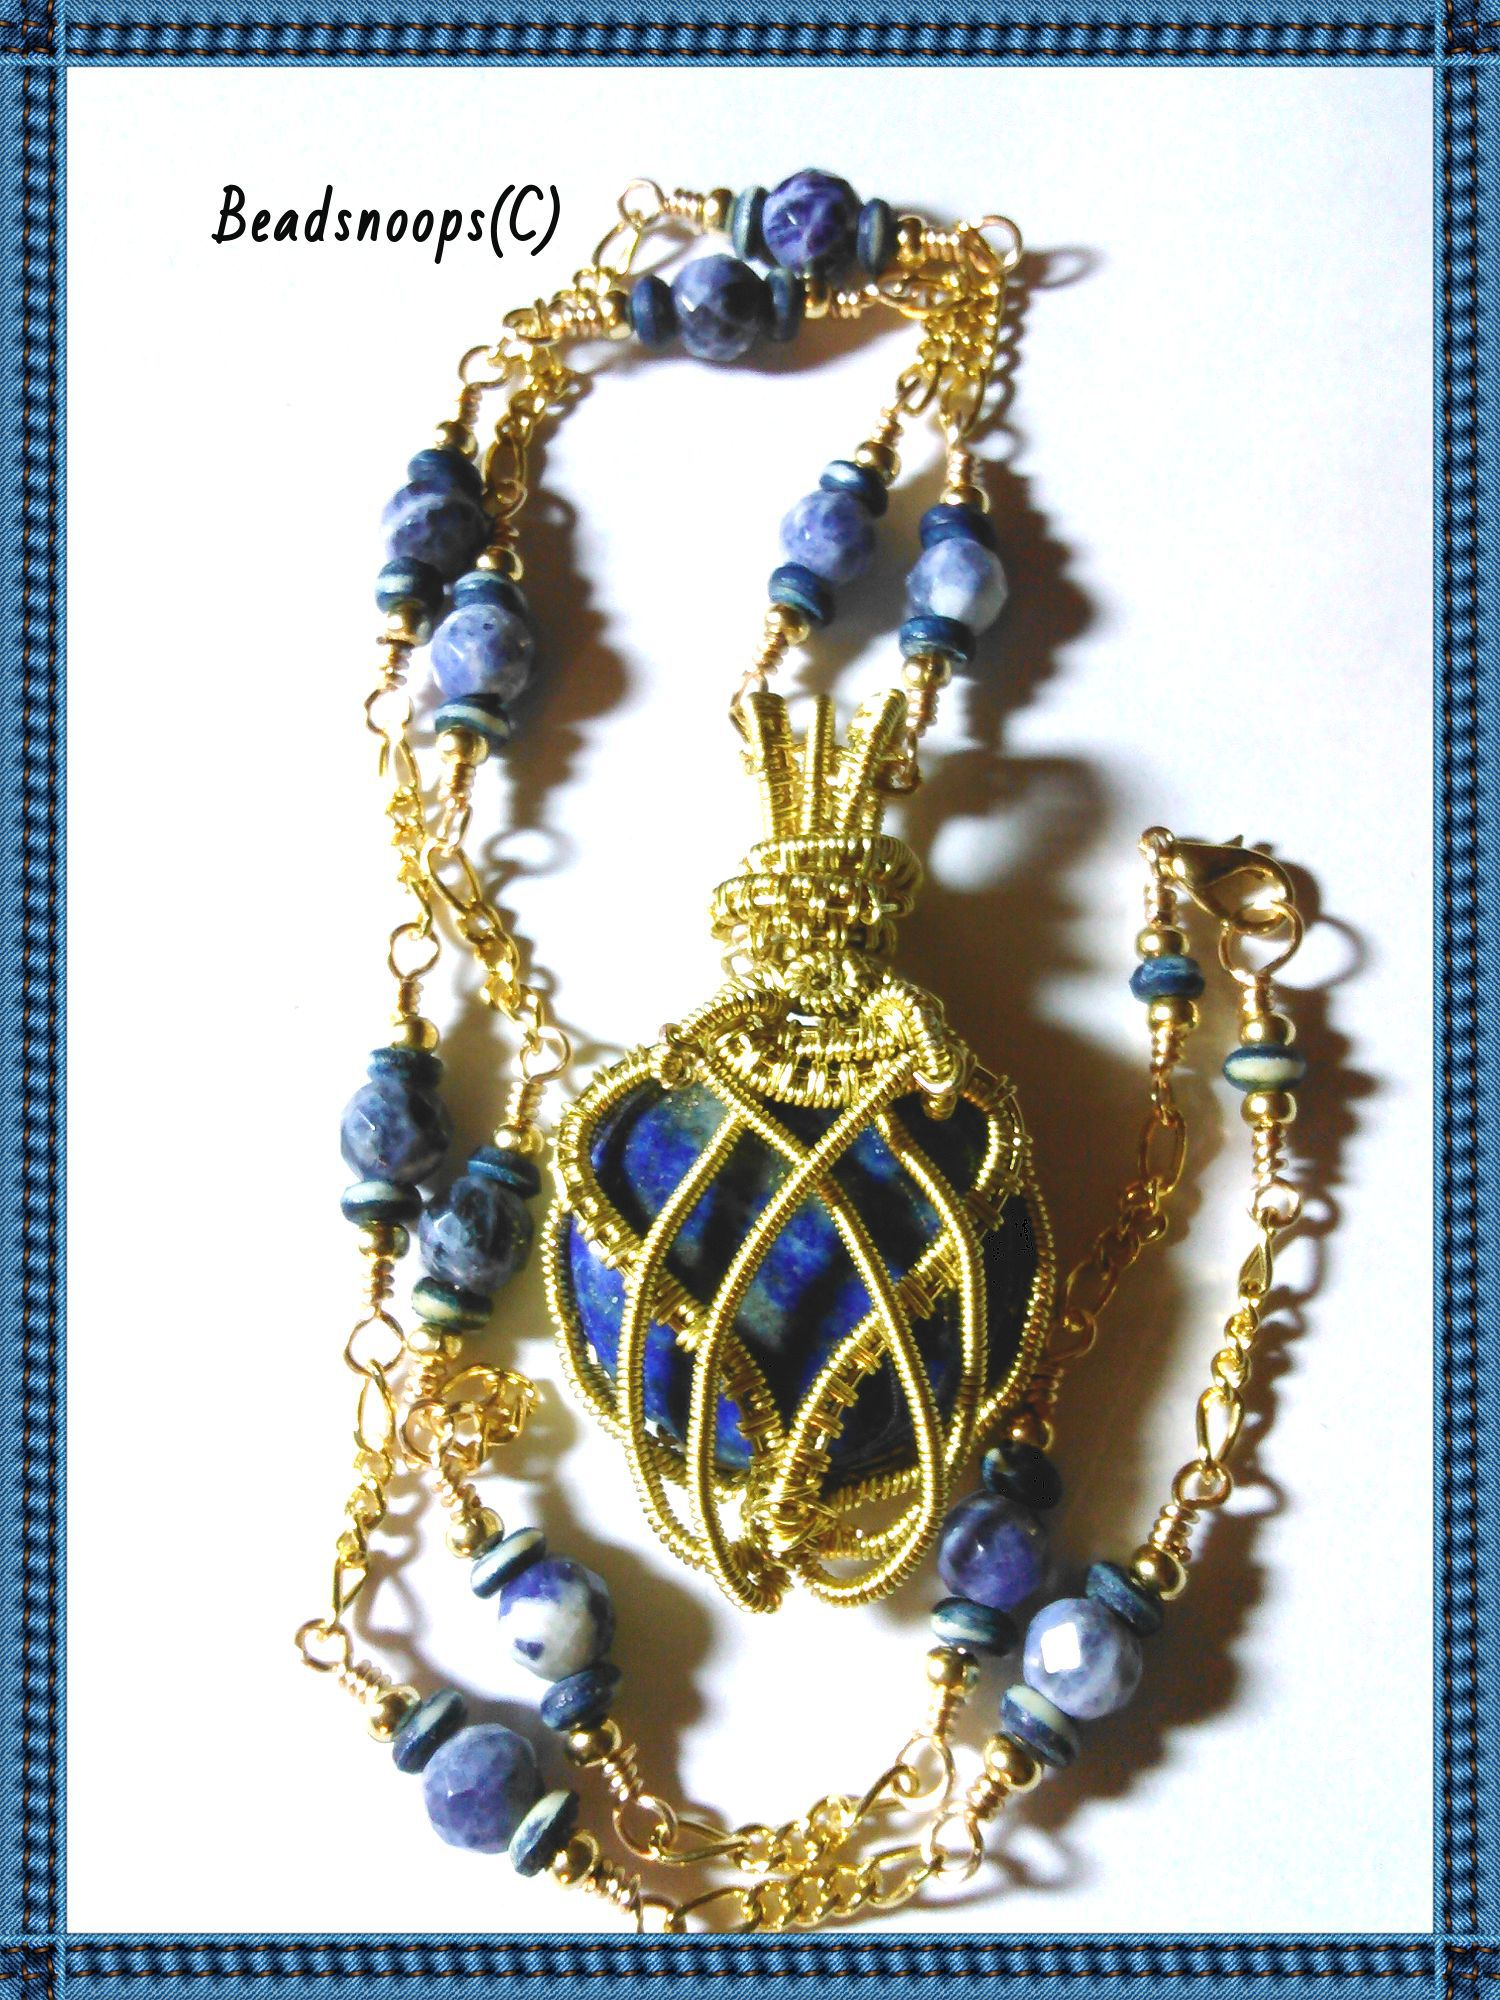 pendant unique necklace handcrafted gemstone beadsnoops sodalite oneofakind wirewrapwire